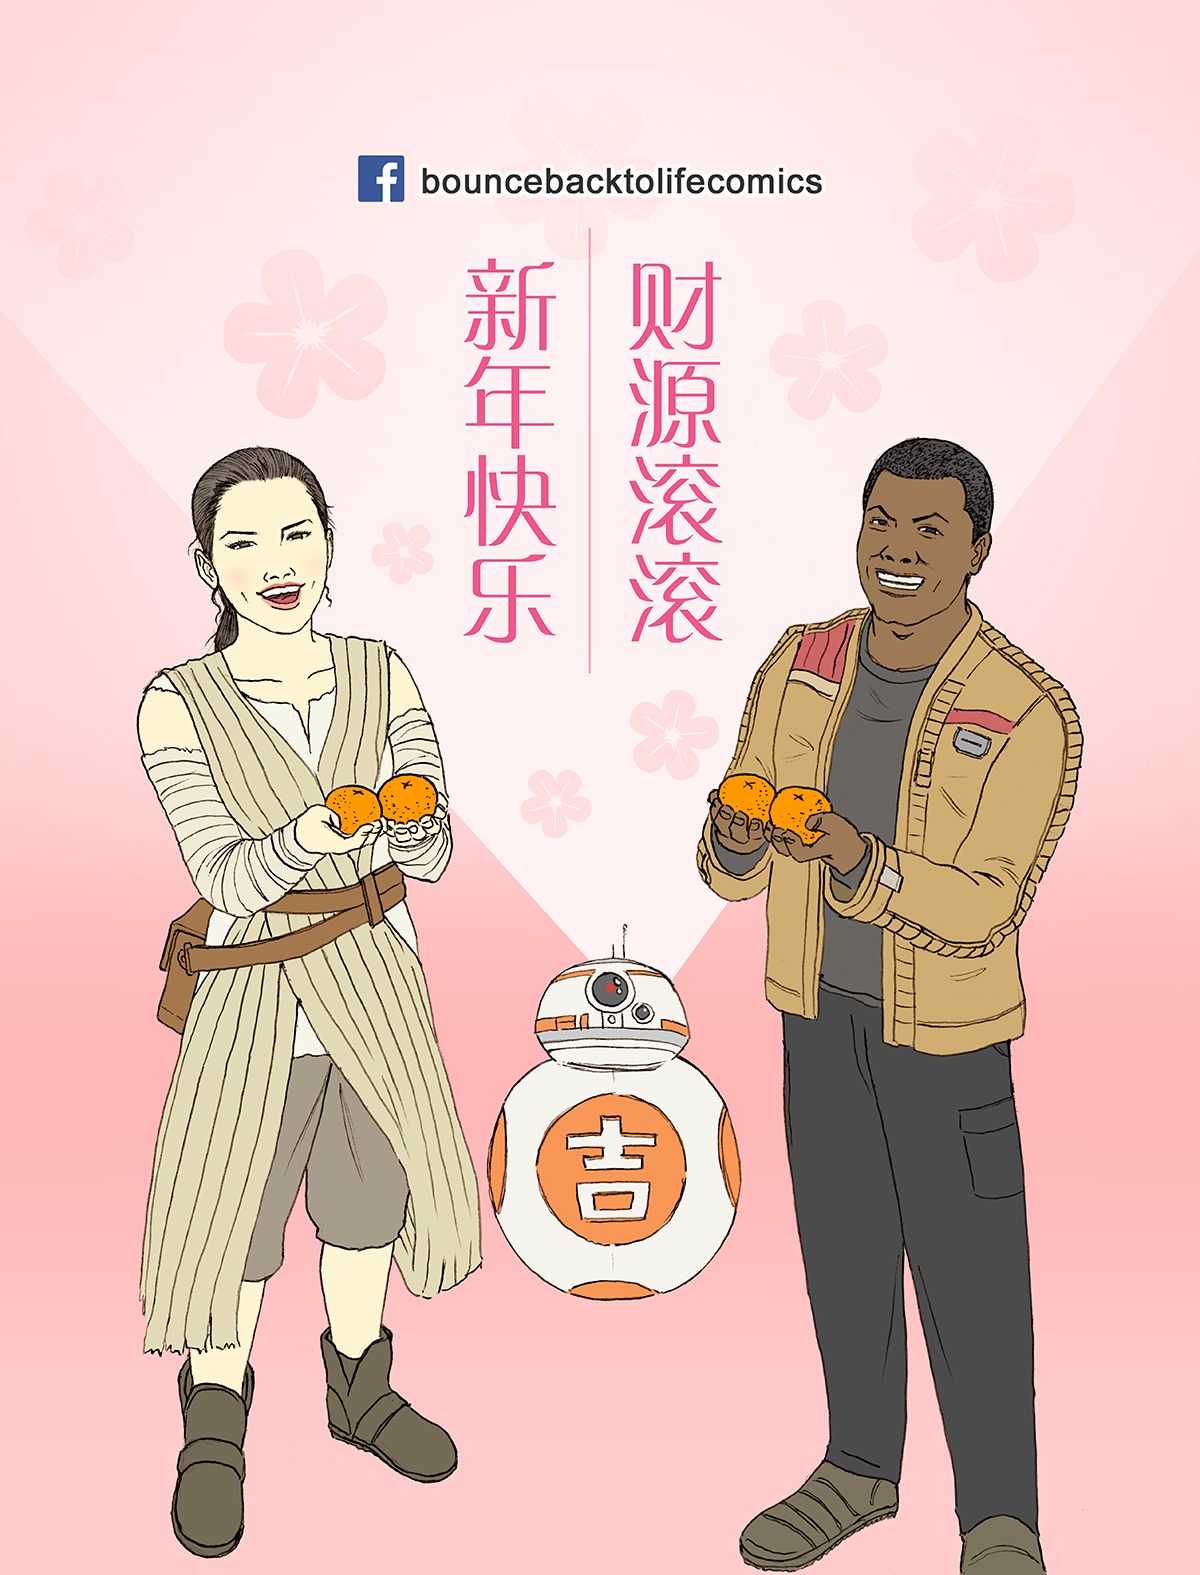 Star Wars, Rey, Finn, The Force Awakens, Lunar New Year, Chinese New Year